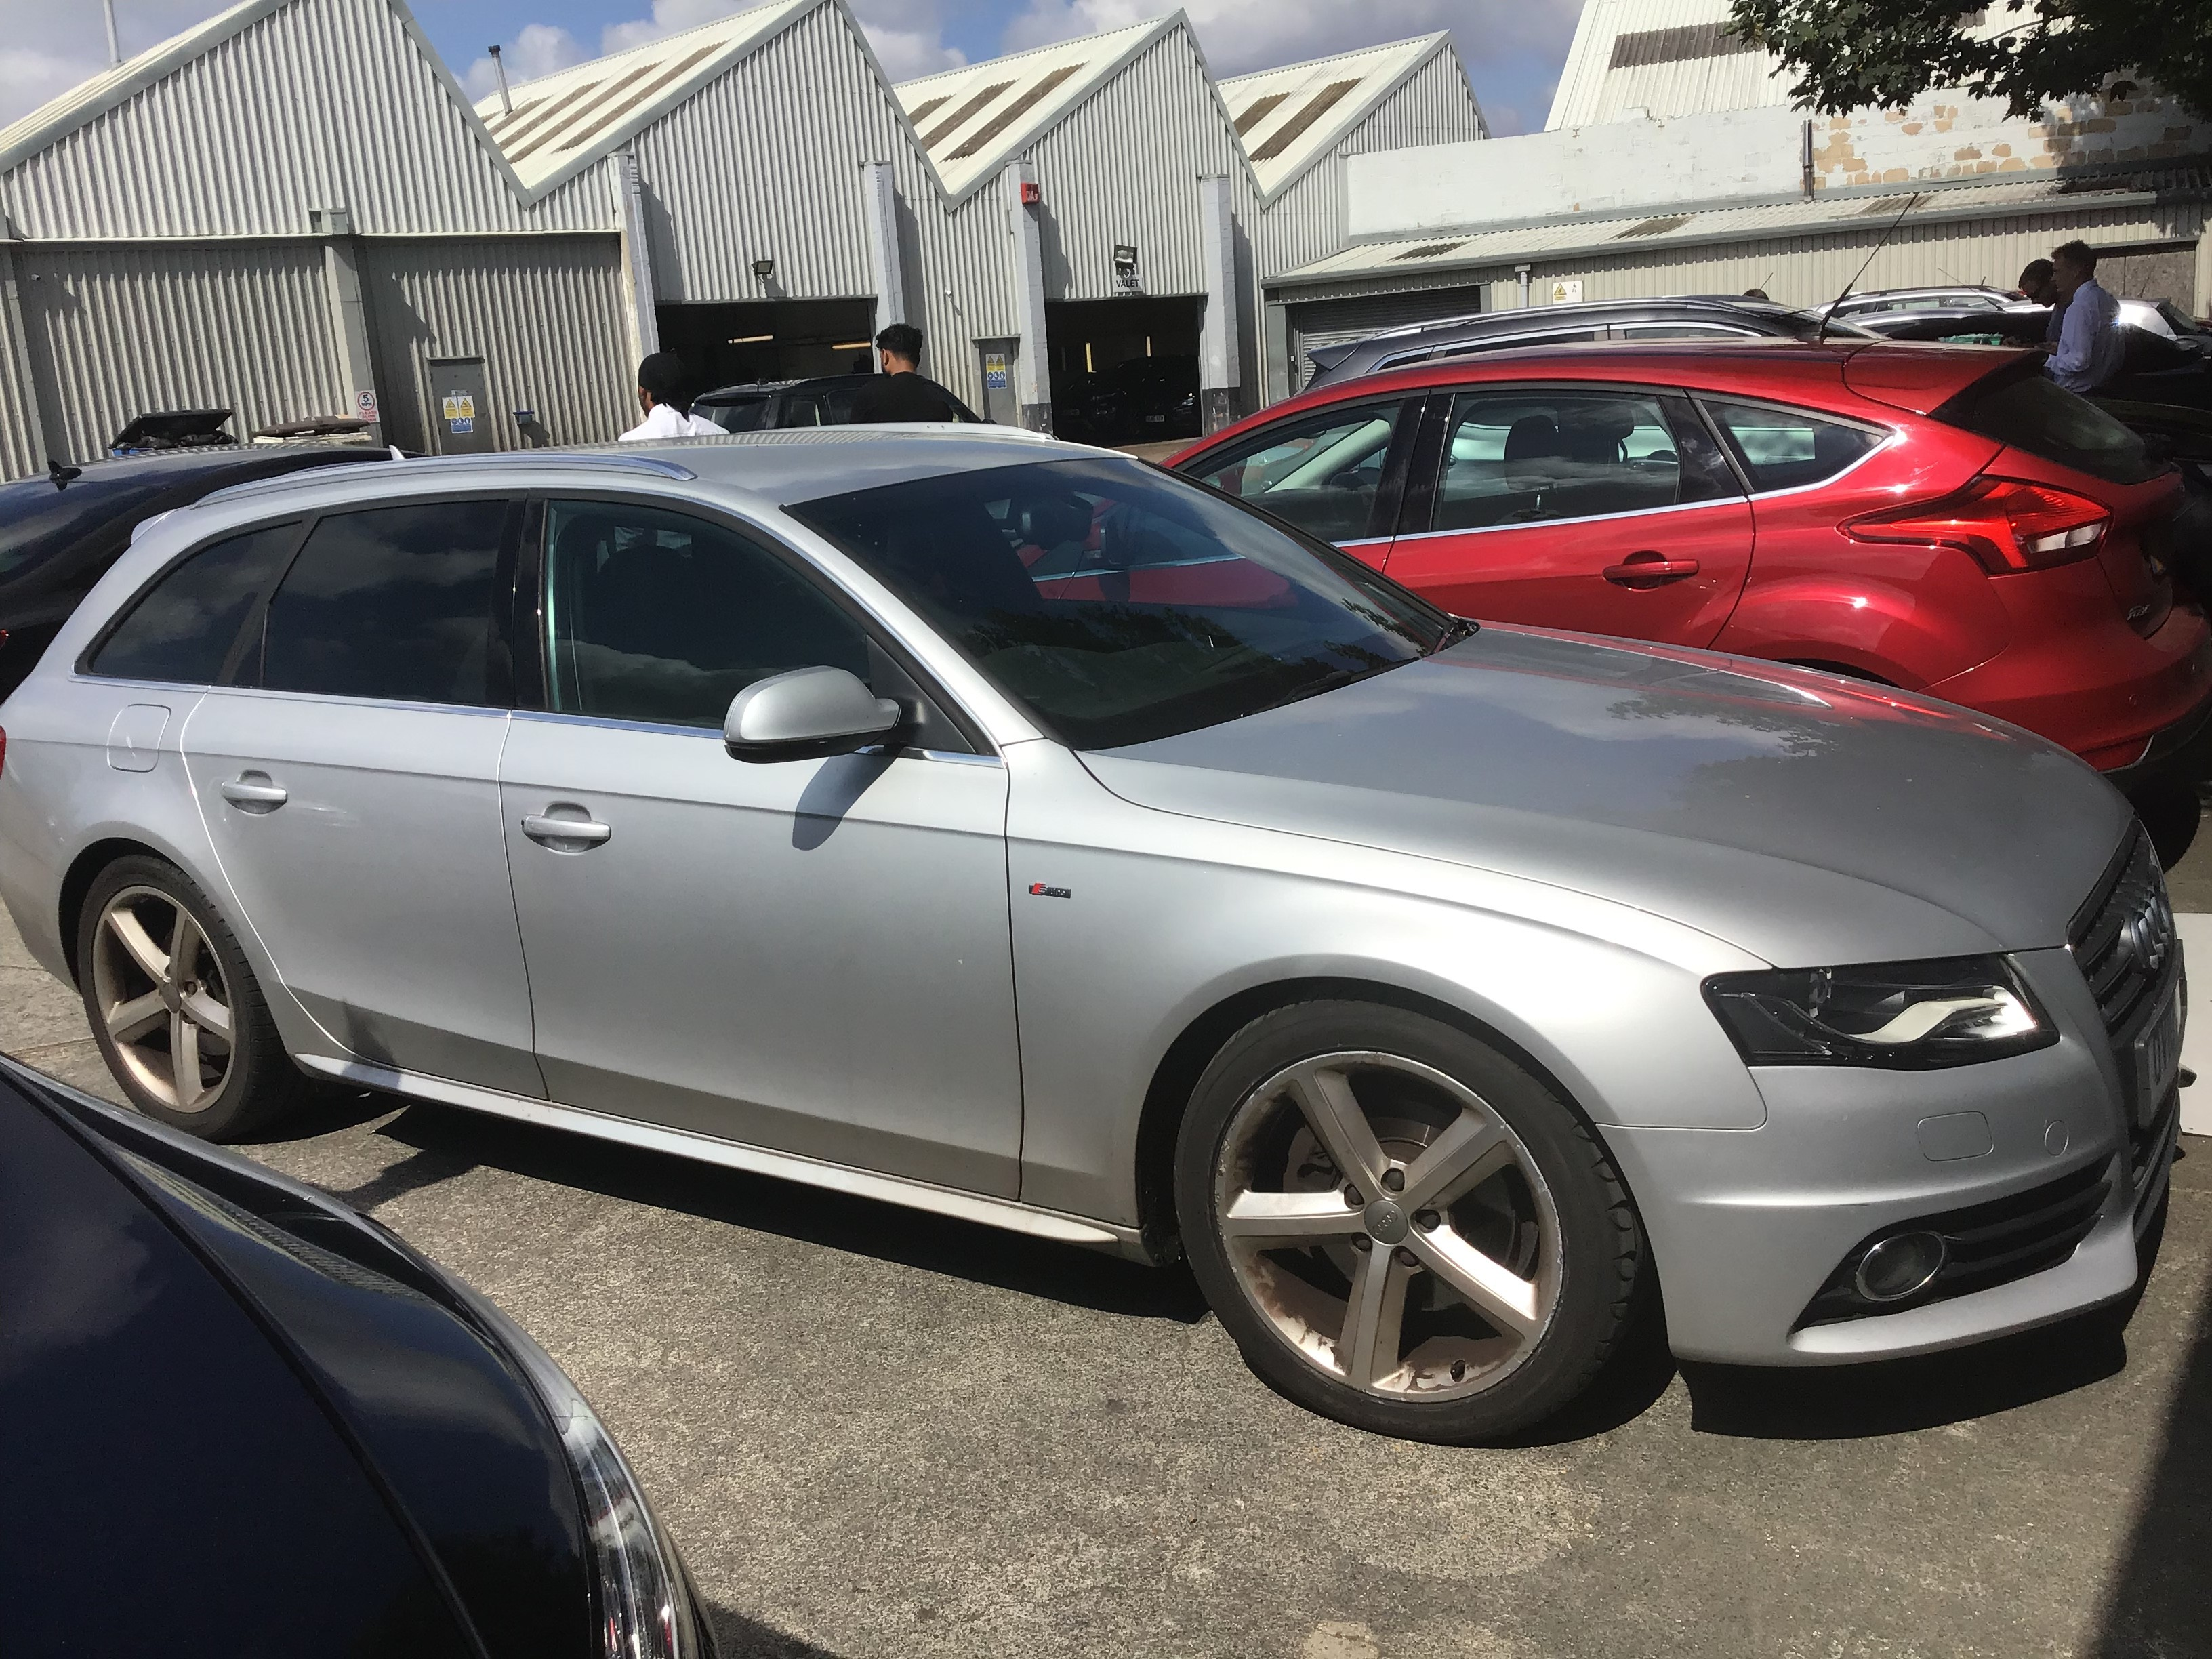 Audi A4 2.0 TDI 143 S Line 5dr [Start Stop] Exterior 1